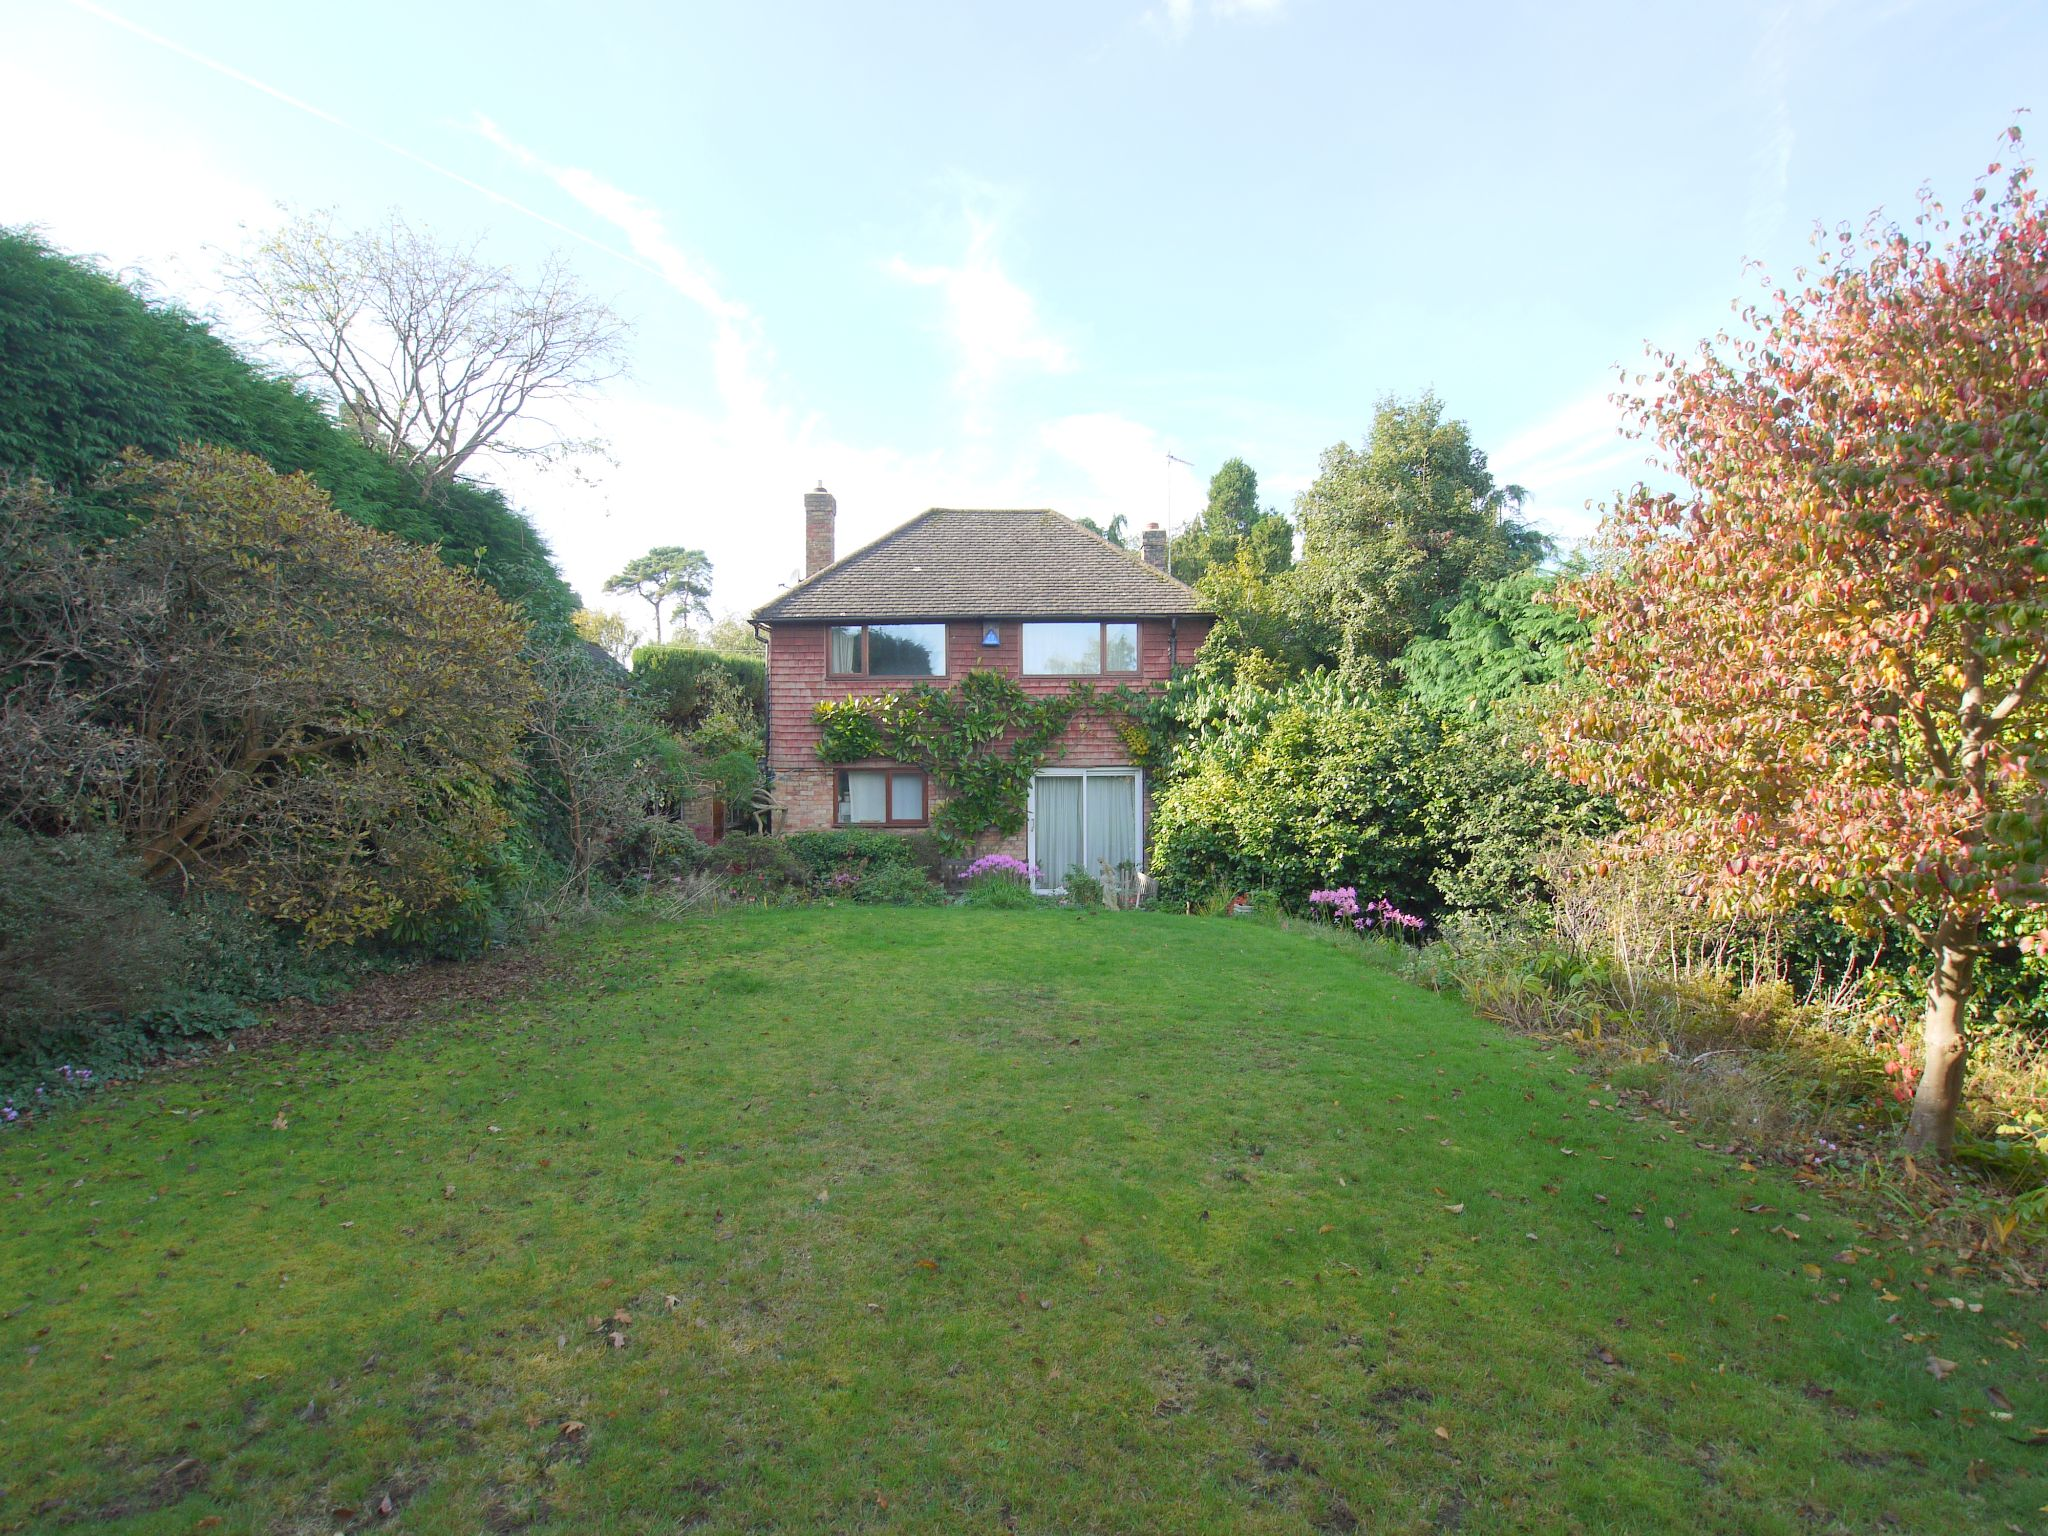 3 bedroom detached house Sold in Sevenoaks - Photograph 10